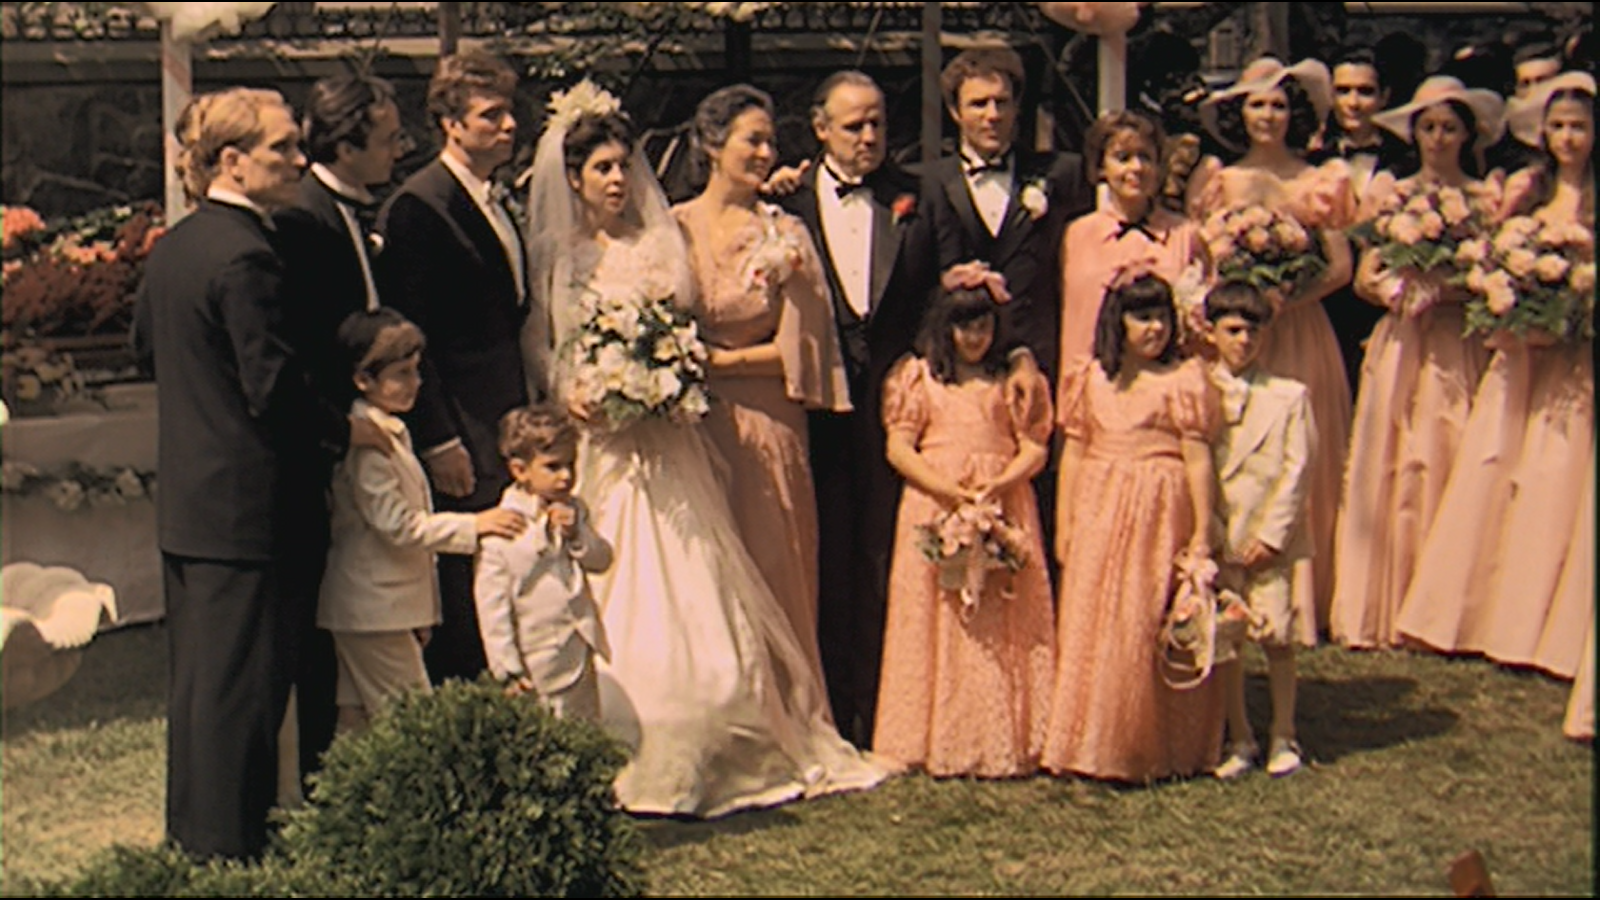 Minute 8: The Godfather-The Wedding Begins - Amanda and Stephen finally enter the brightness of the wedding in Minute 8. They are given visual introductions to a whole new set of characters in the iconic wedding photo but someone's still missing. They also discuss details about the location used for the Corleone compound.